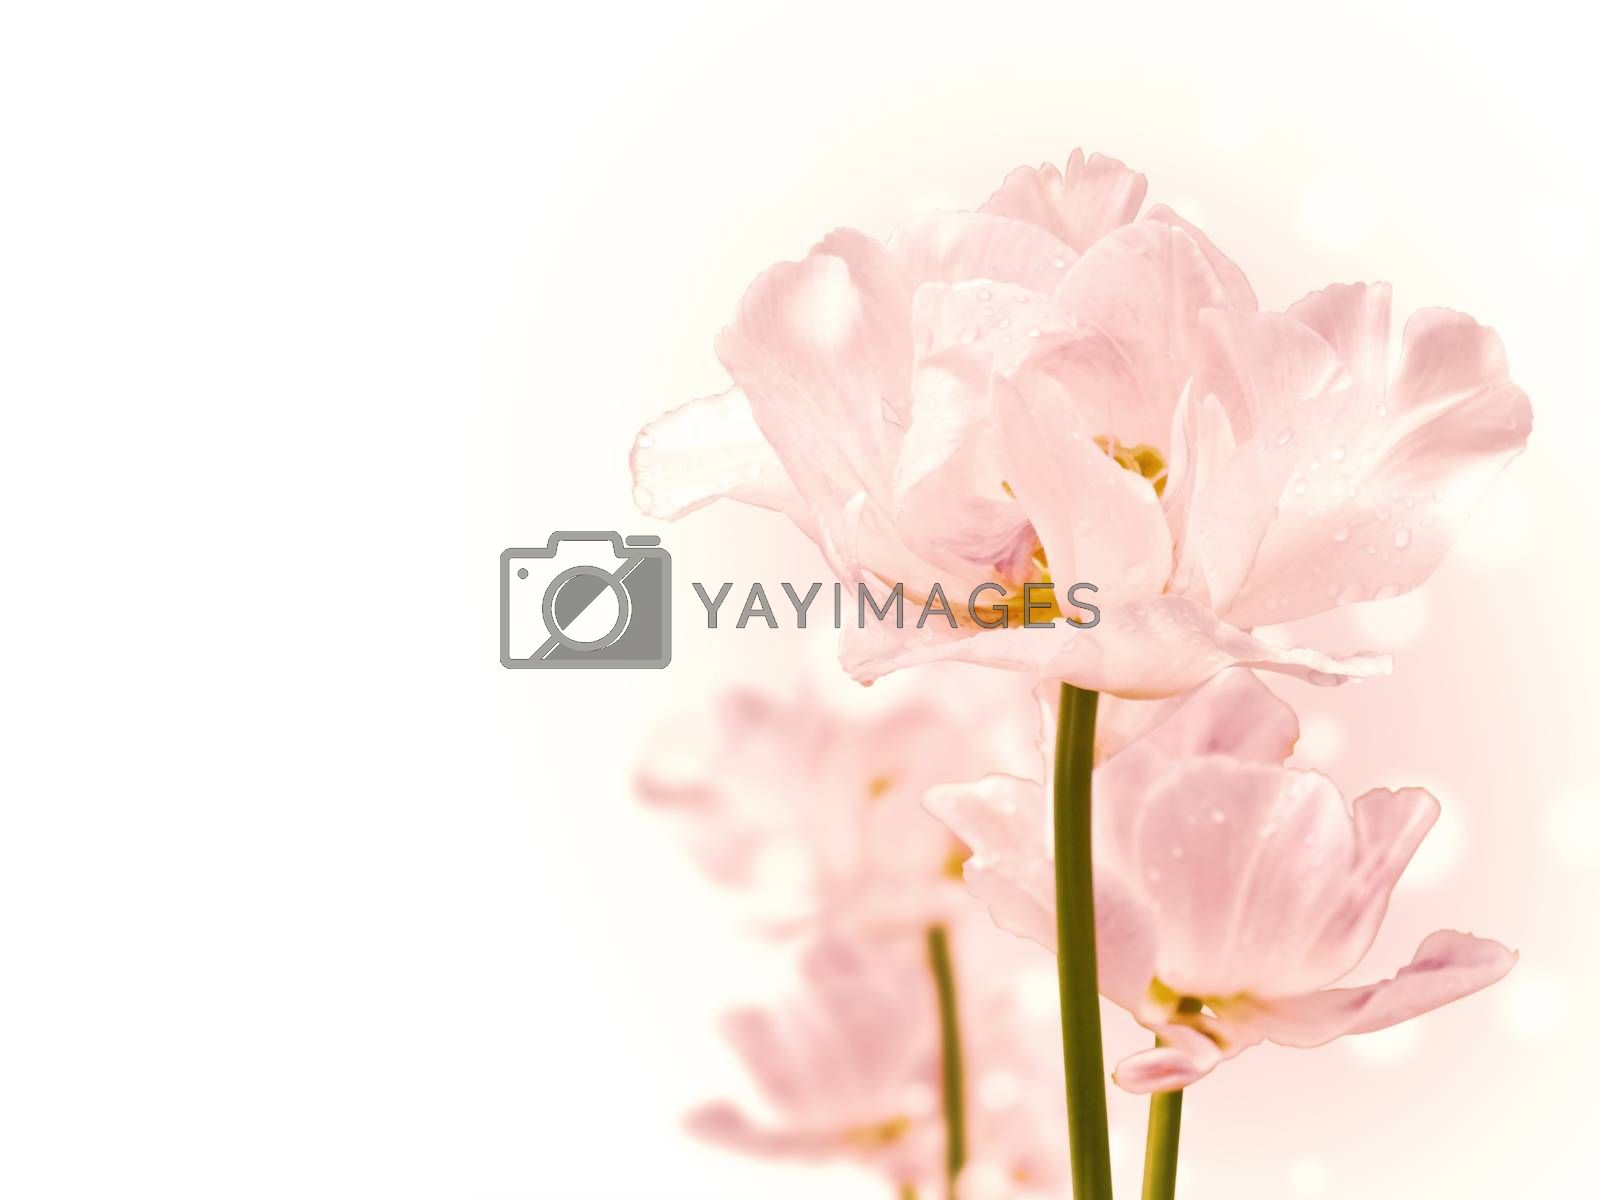 Photo of Pink Purity Flowers, Copyspace